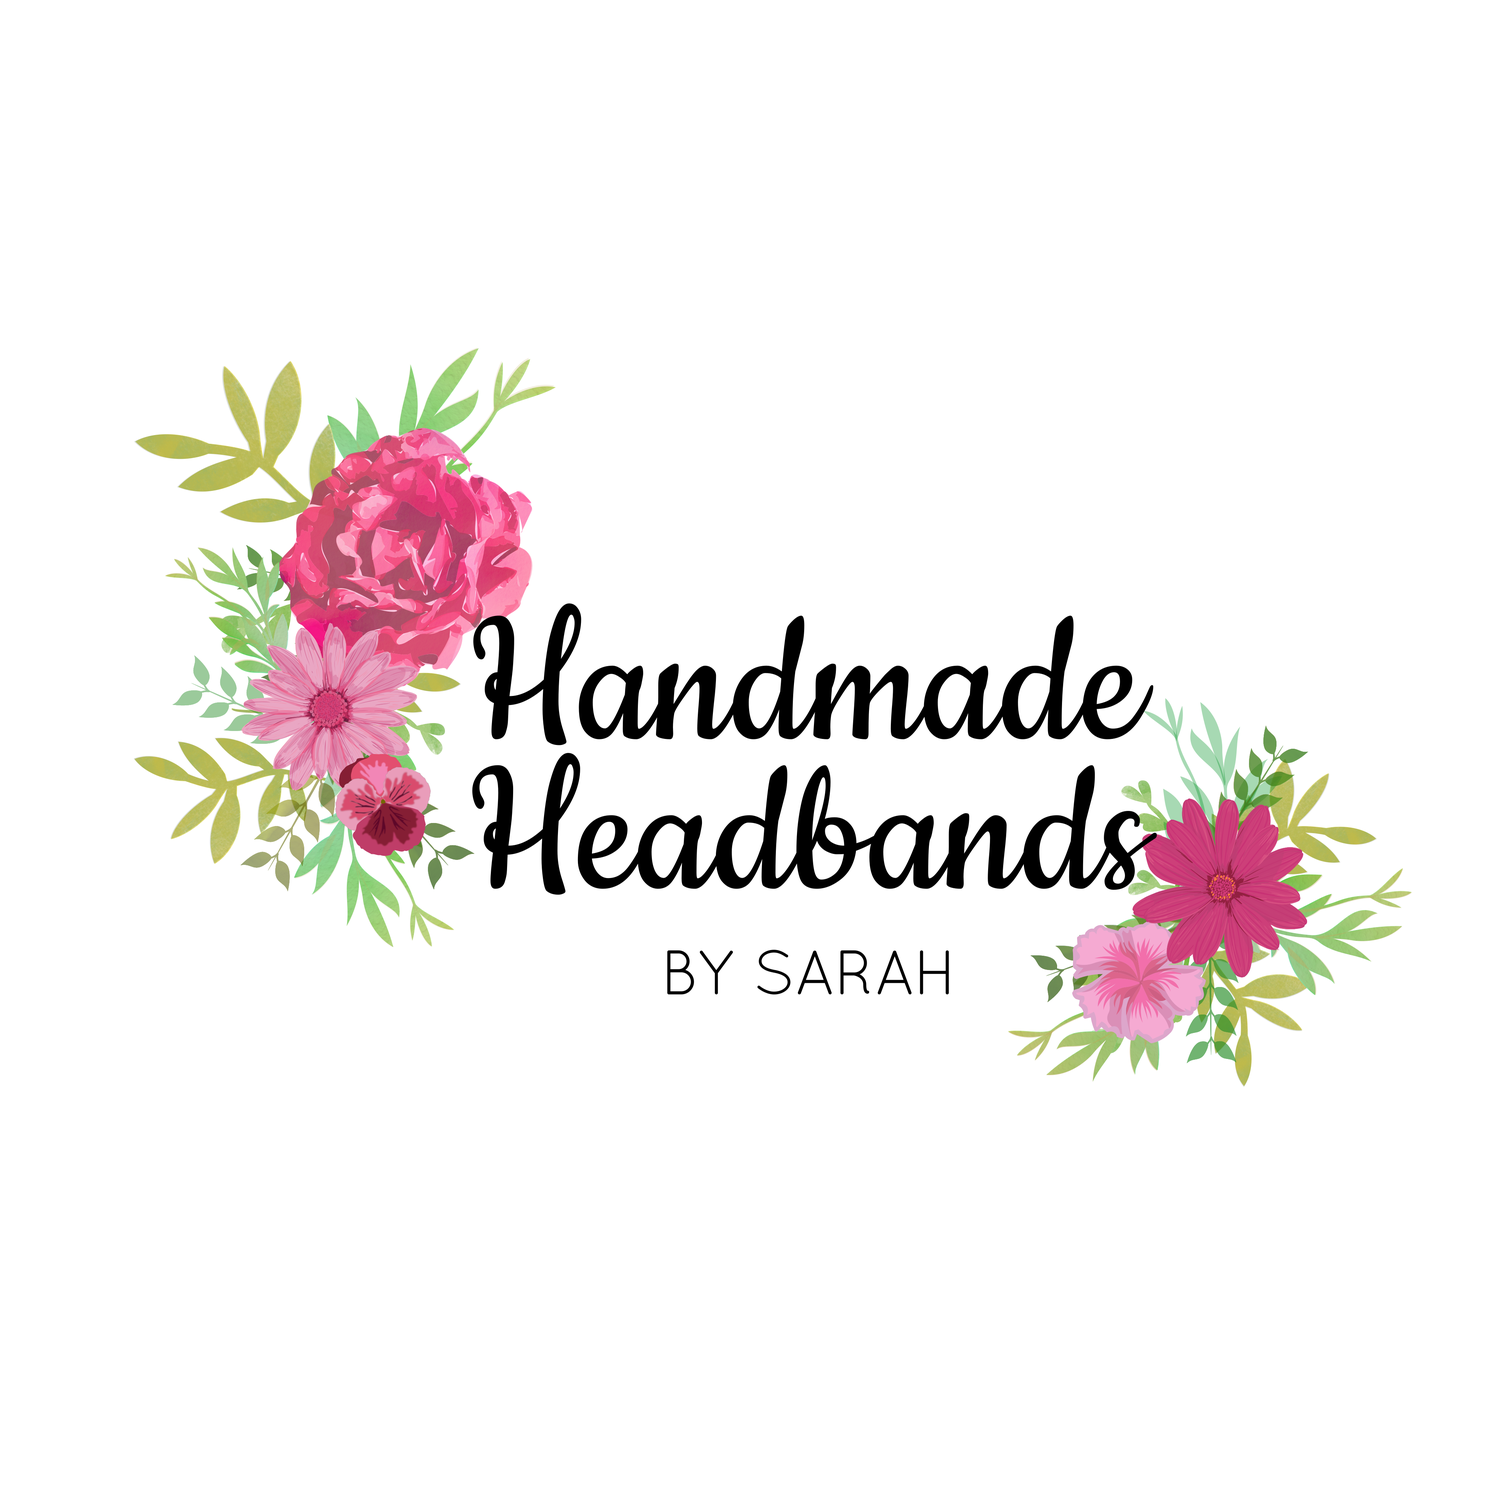 Handmade Headbands By Sarah